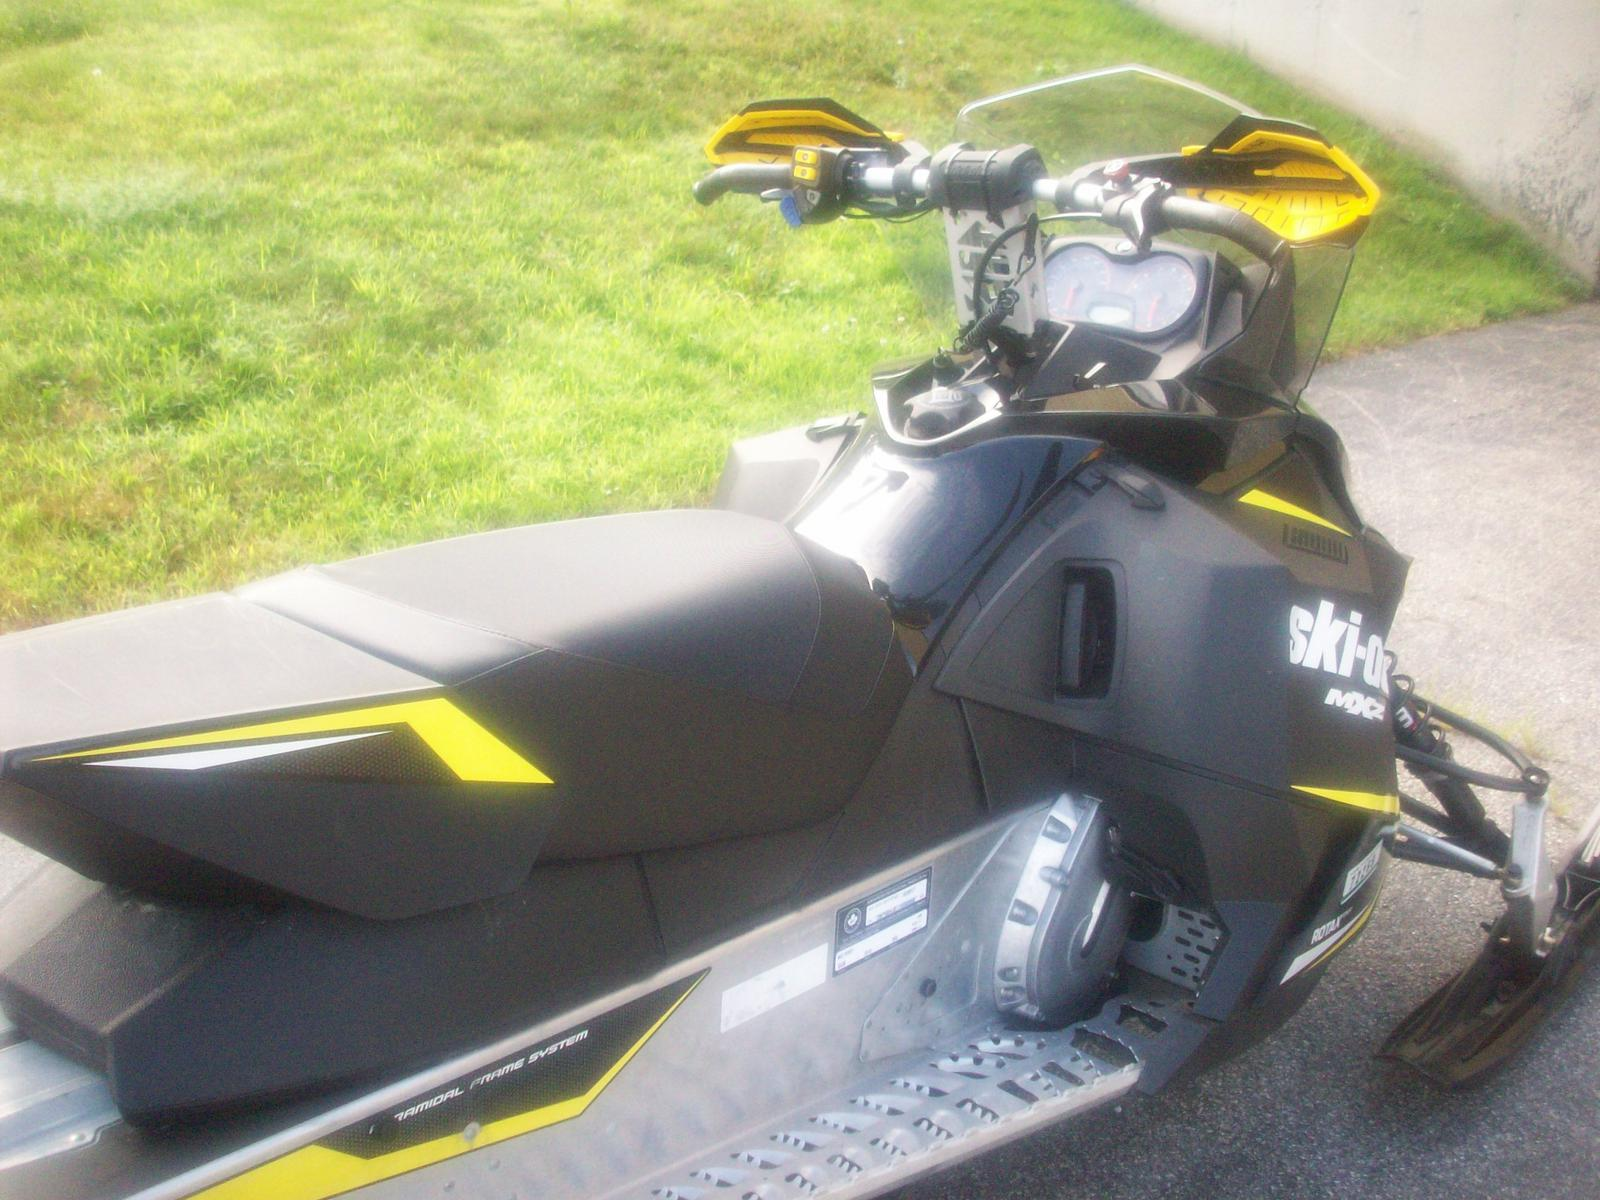 In-Stock New and Used Models For Sale in Epsom, NH